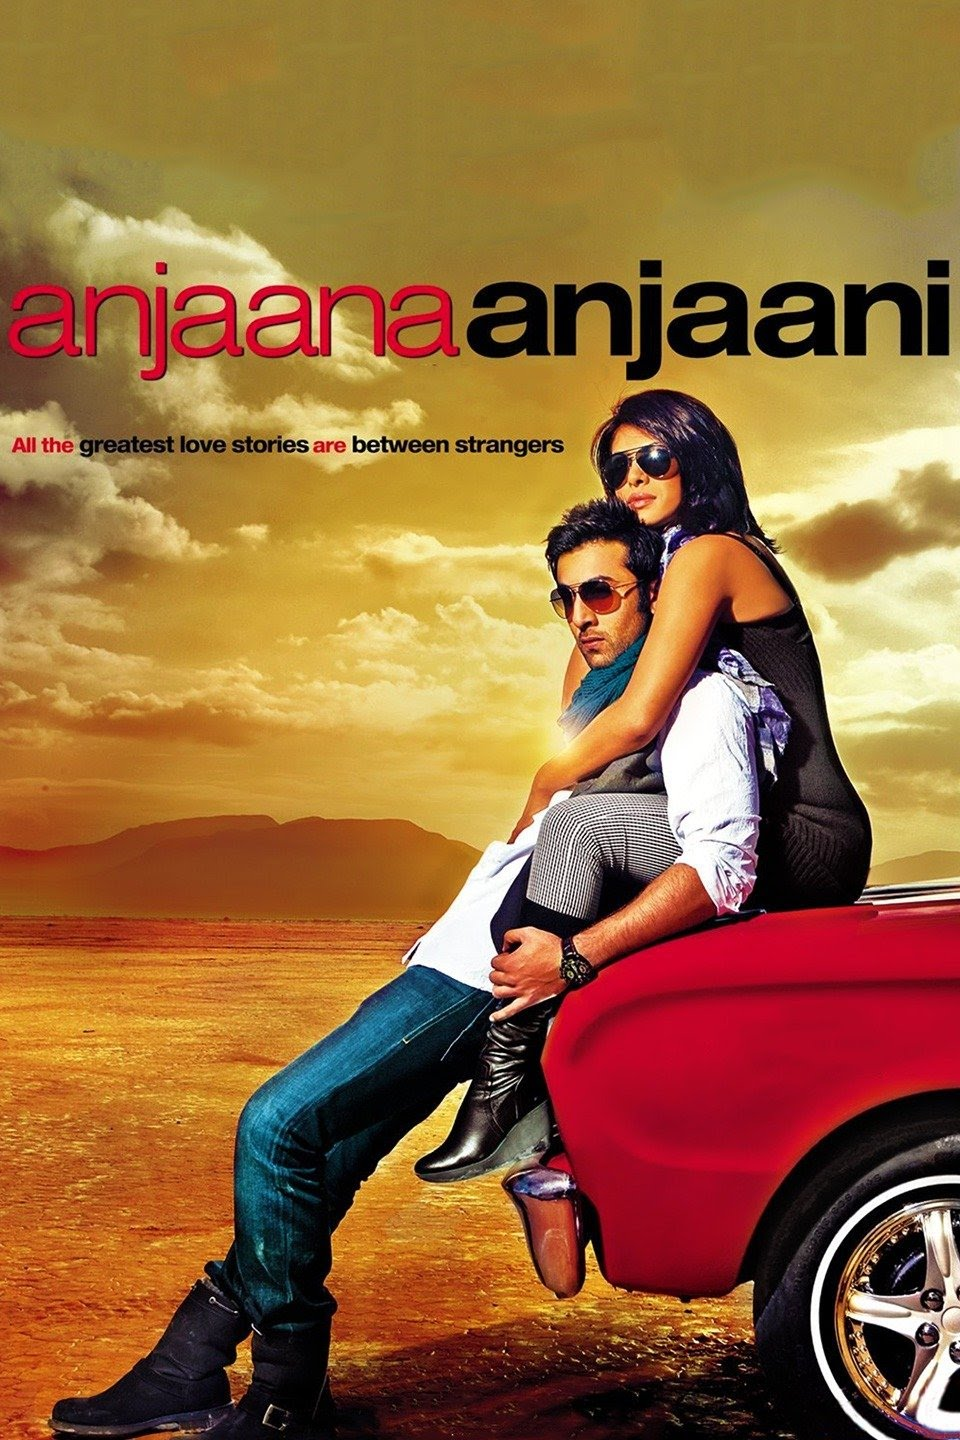 Download Anjaana Anjaani (2010) full Movie in 480p & 720p